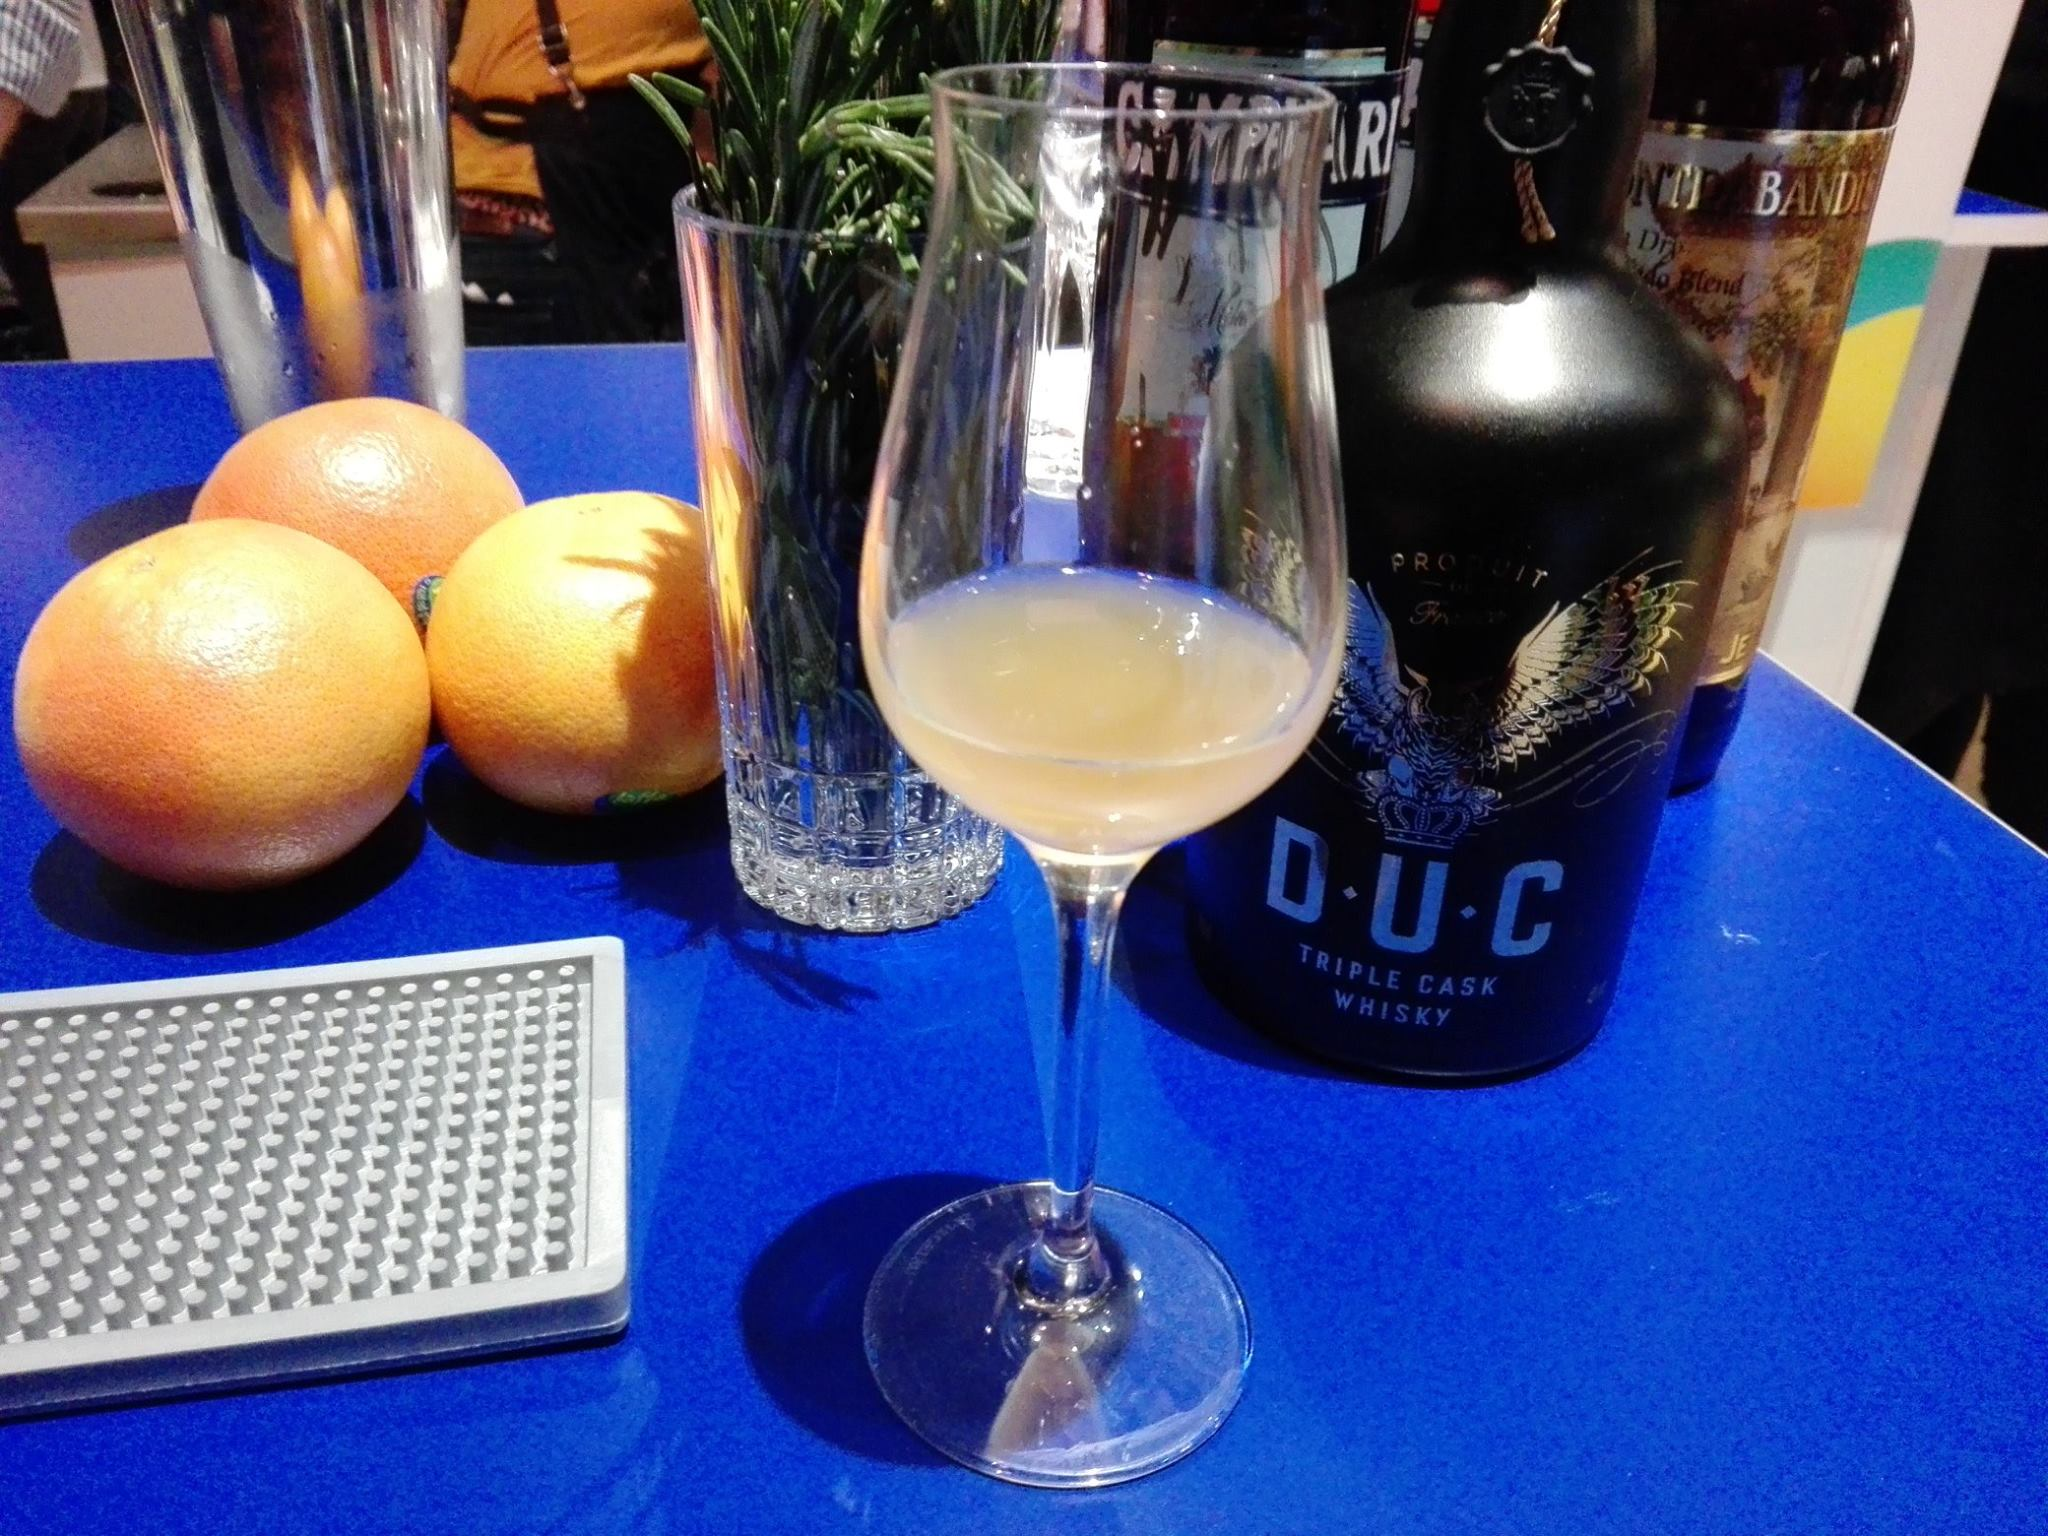 Cocktail Milky Way - Whisky DUC